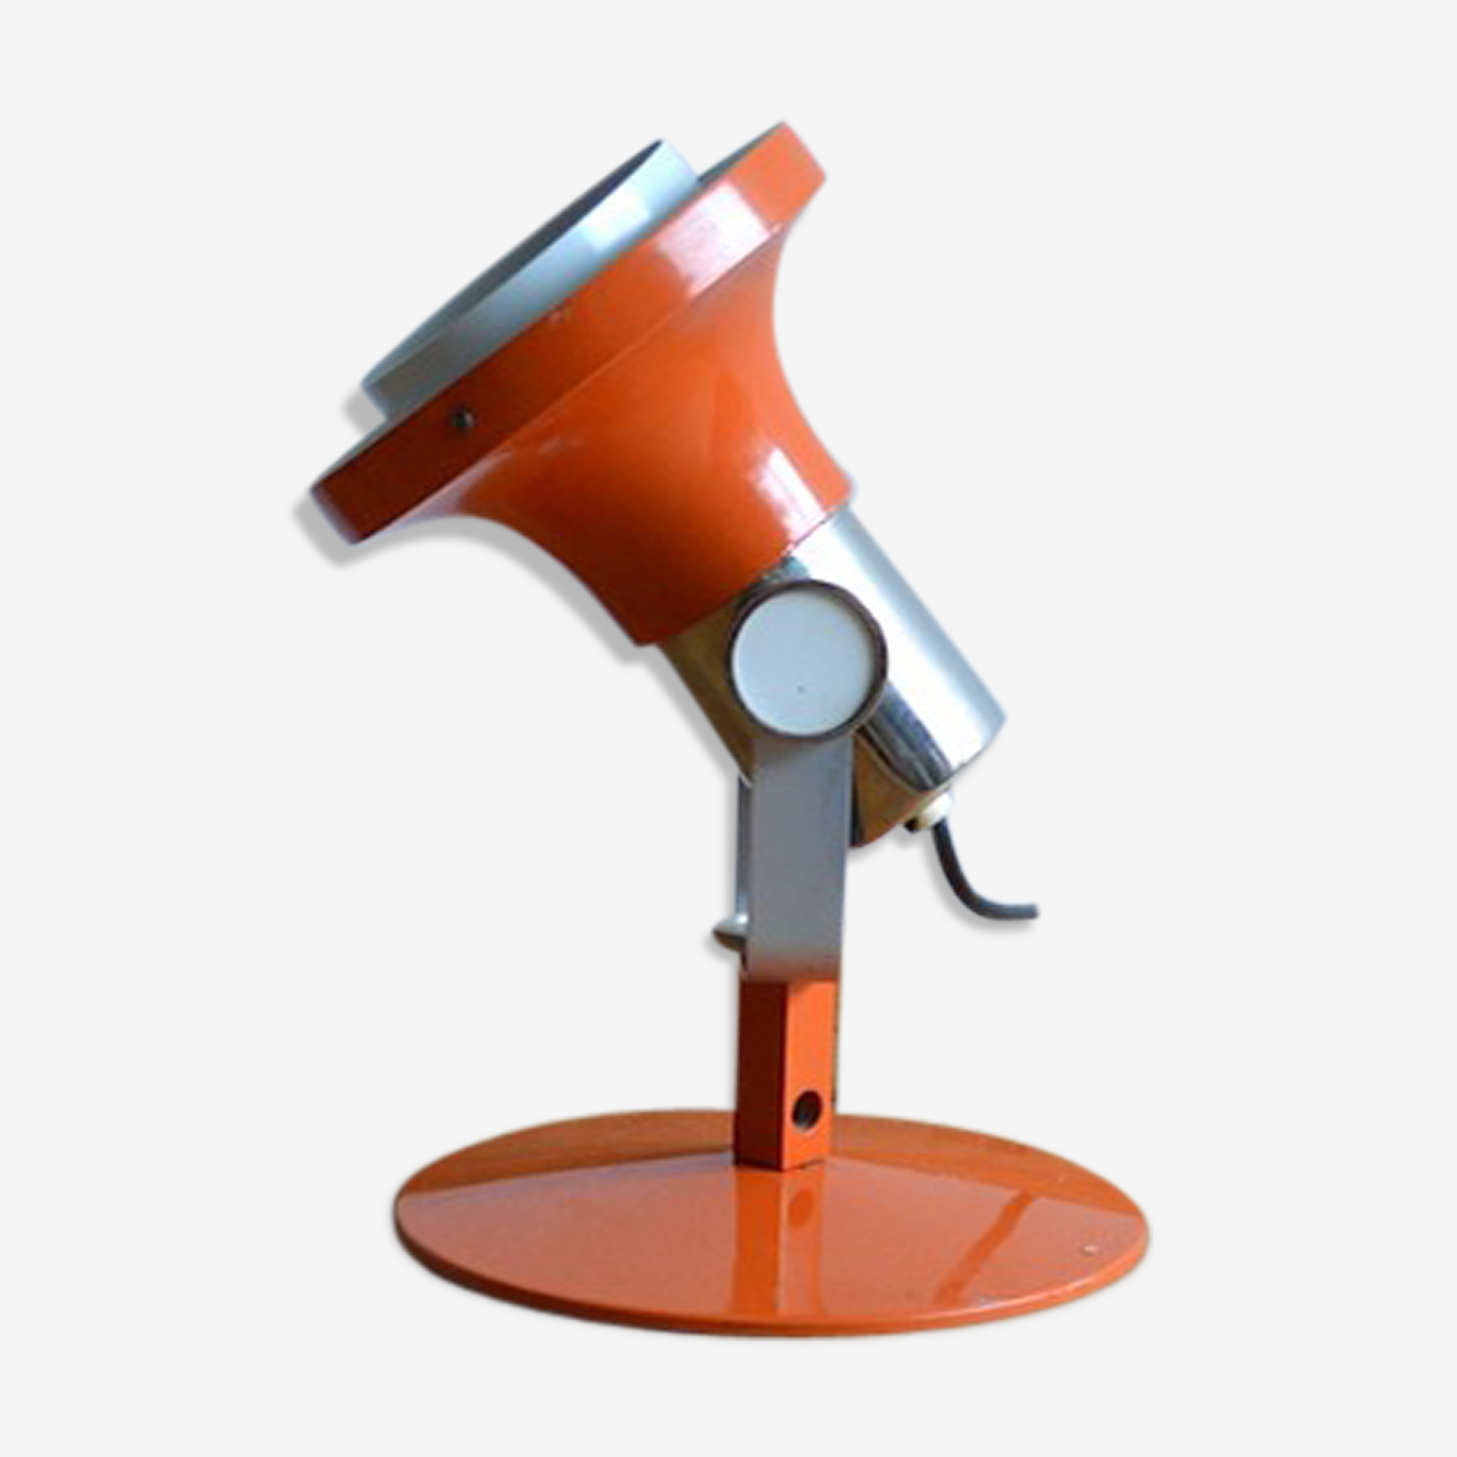 The 1970s table lamp